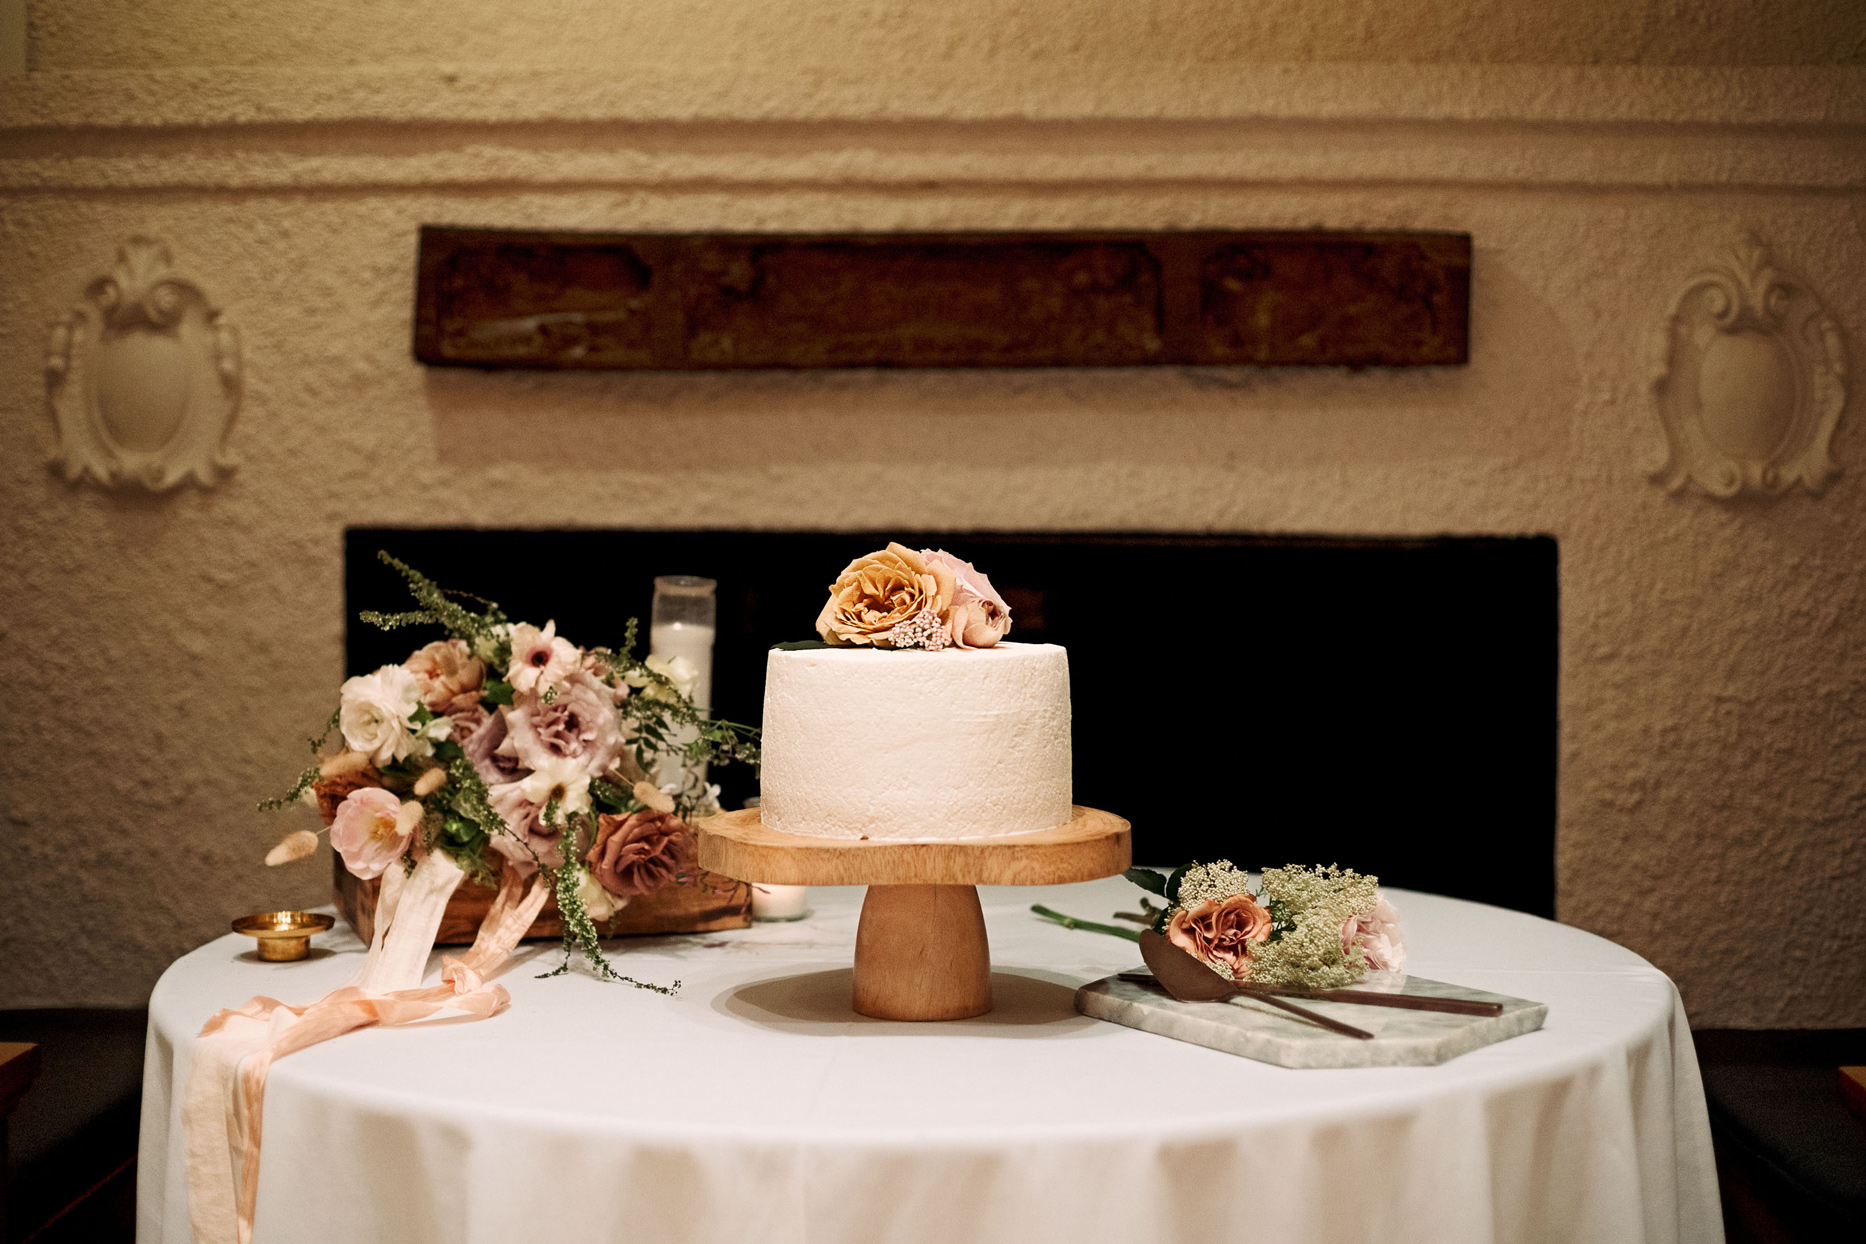 White frosted wedding cake with flora accents